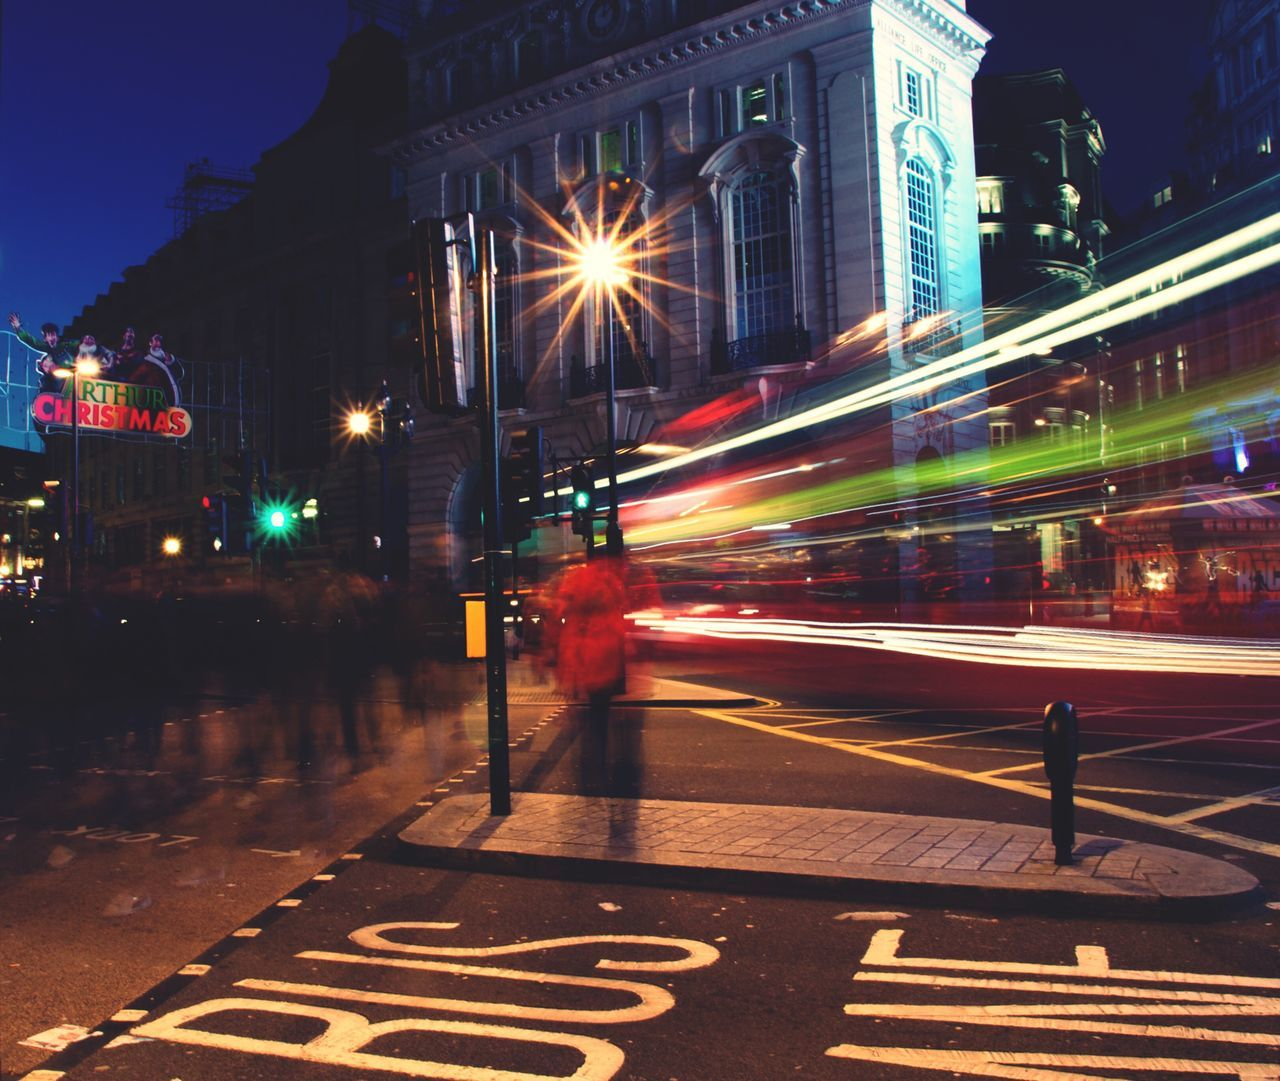 The City Light London Lights London Piccadillycircus People Walking Crossing The Street Bus Lane Bus London Bus Christmas Lights Atmosphere Lights Long Exposure Speed Light And Shadow EyeEm New Here